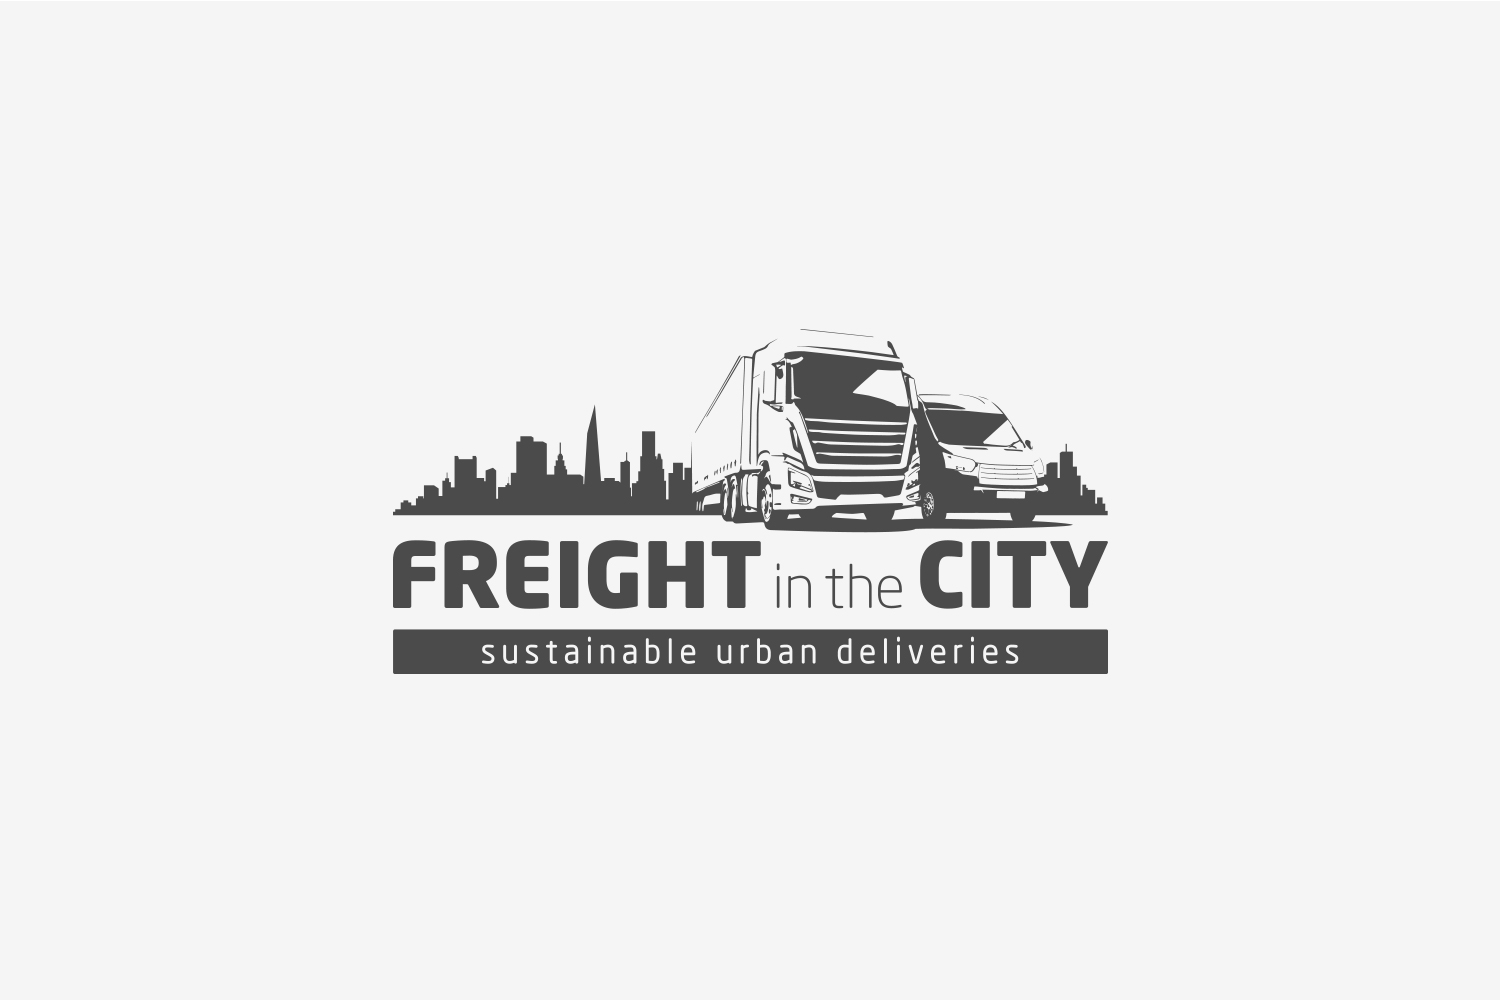 Freight_in_the_city_logo.jpg